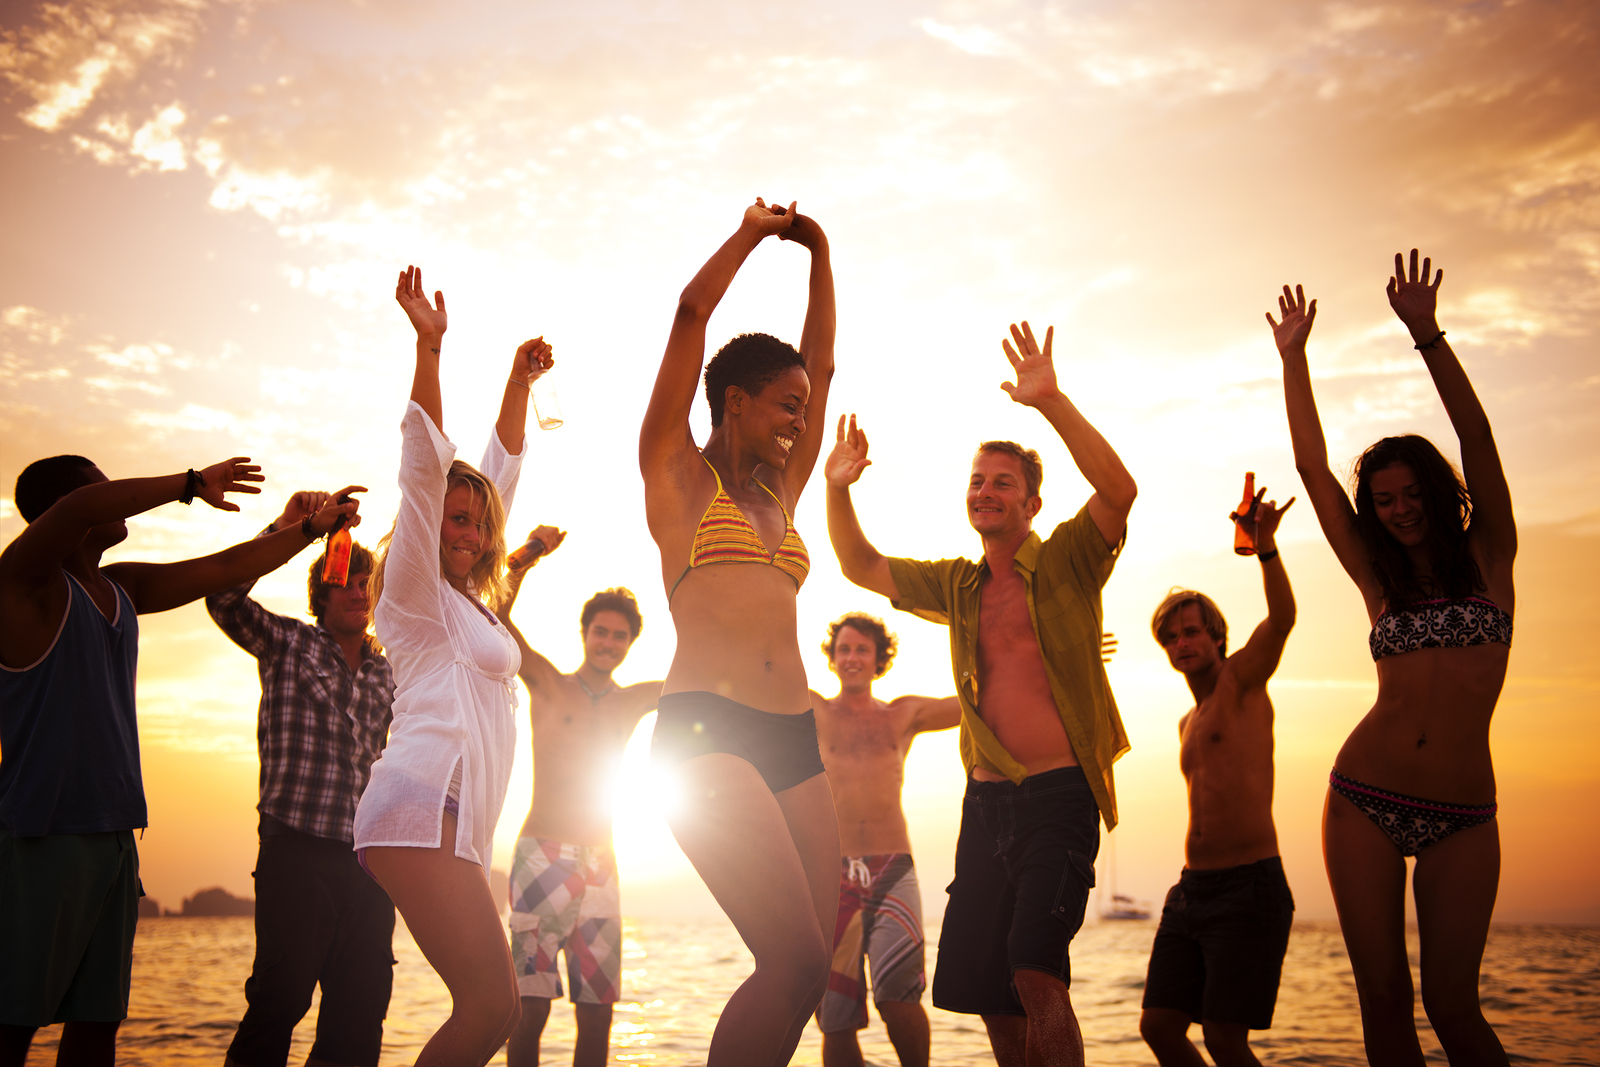 http://www.clearstreamcoaching.com/wp-content/uploads/2014/04/bigstock-Diverse-Young-Happy-People-Dan-62232794.jpg